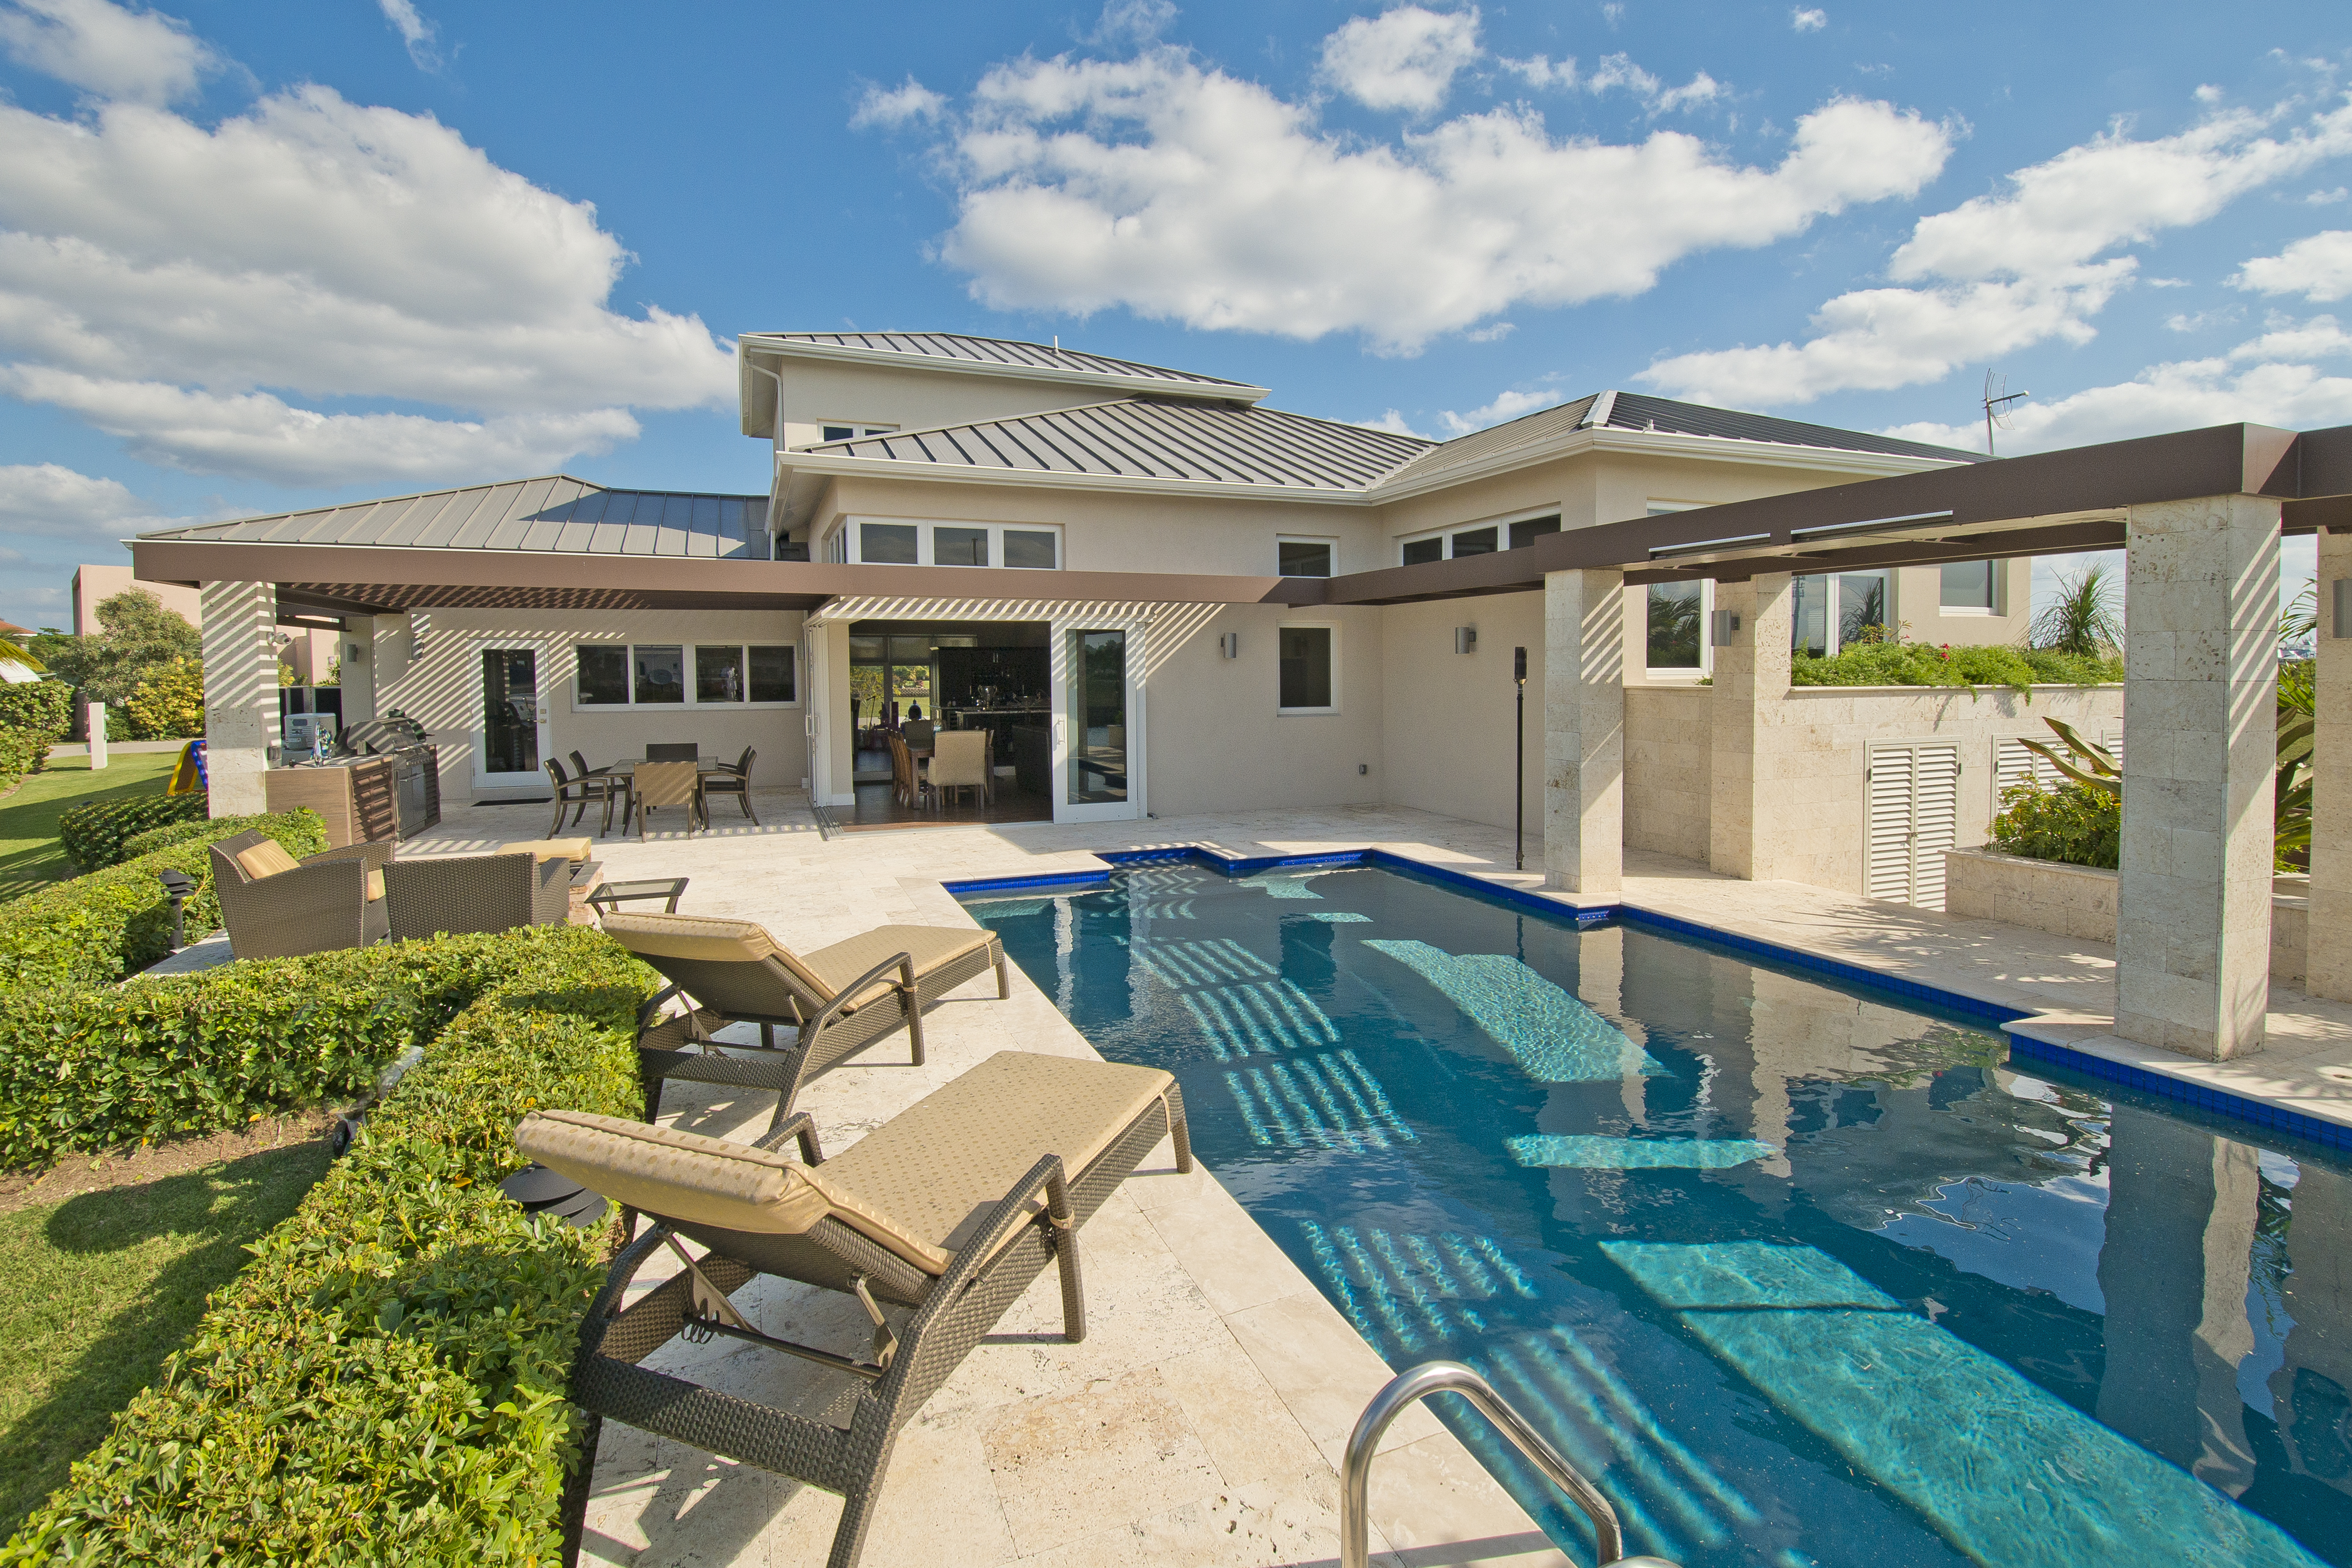 Buying a Property in the Cayman Islands? Special Home Features To Look Out For! - Image 5